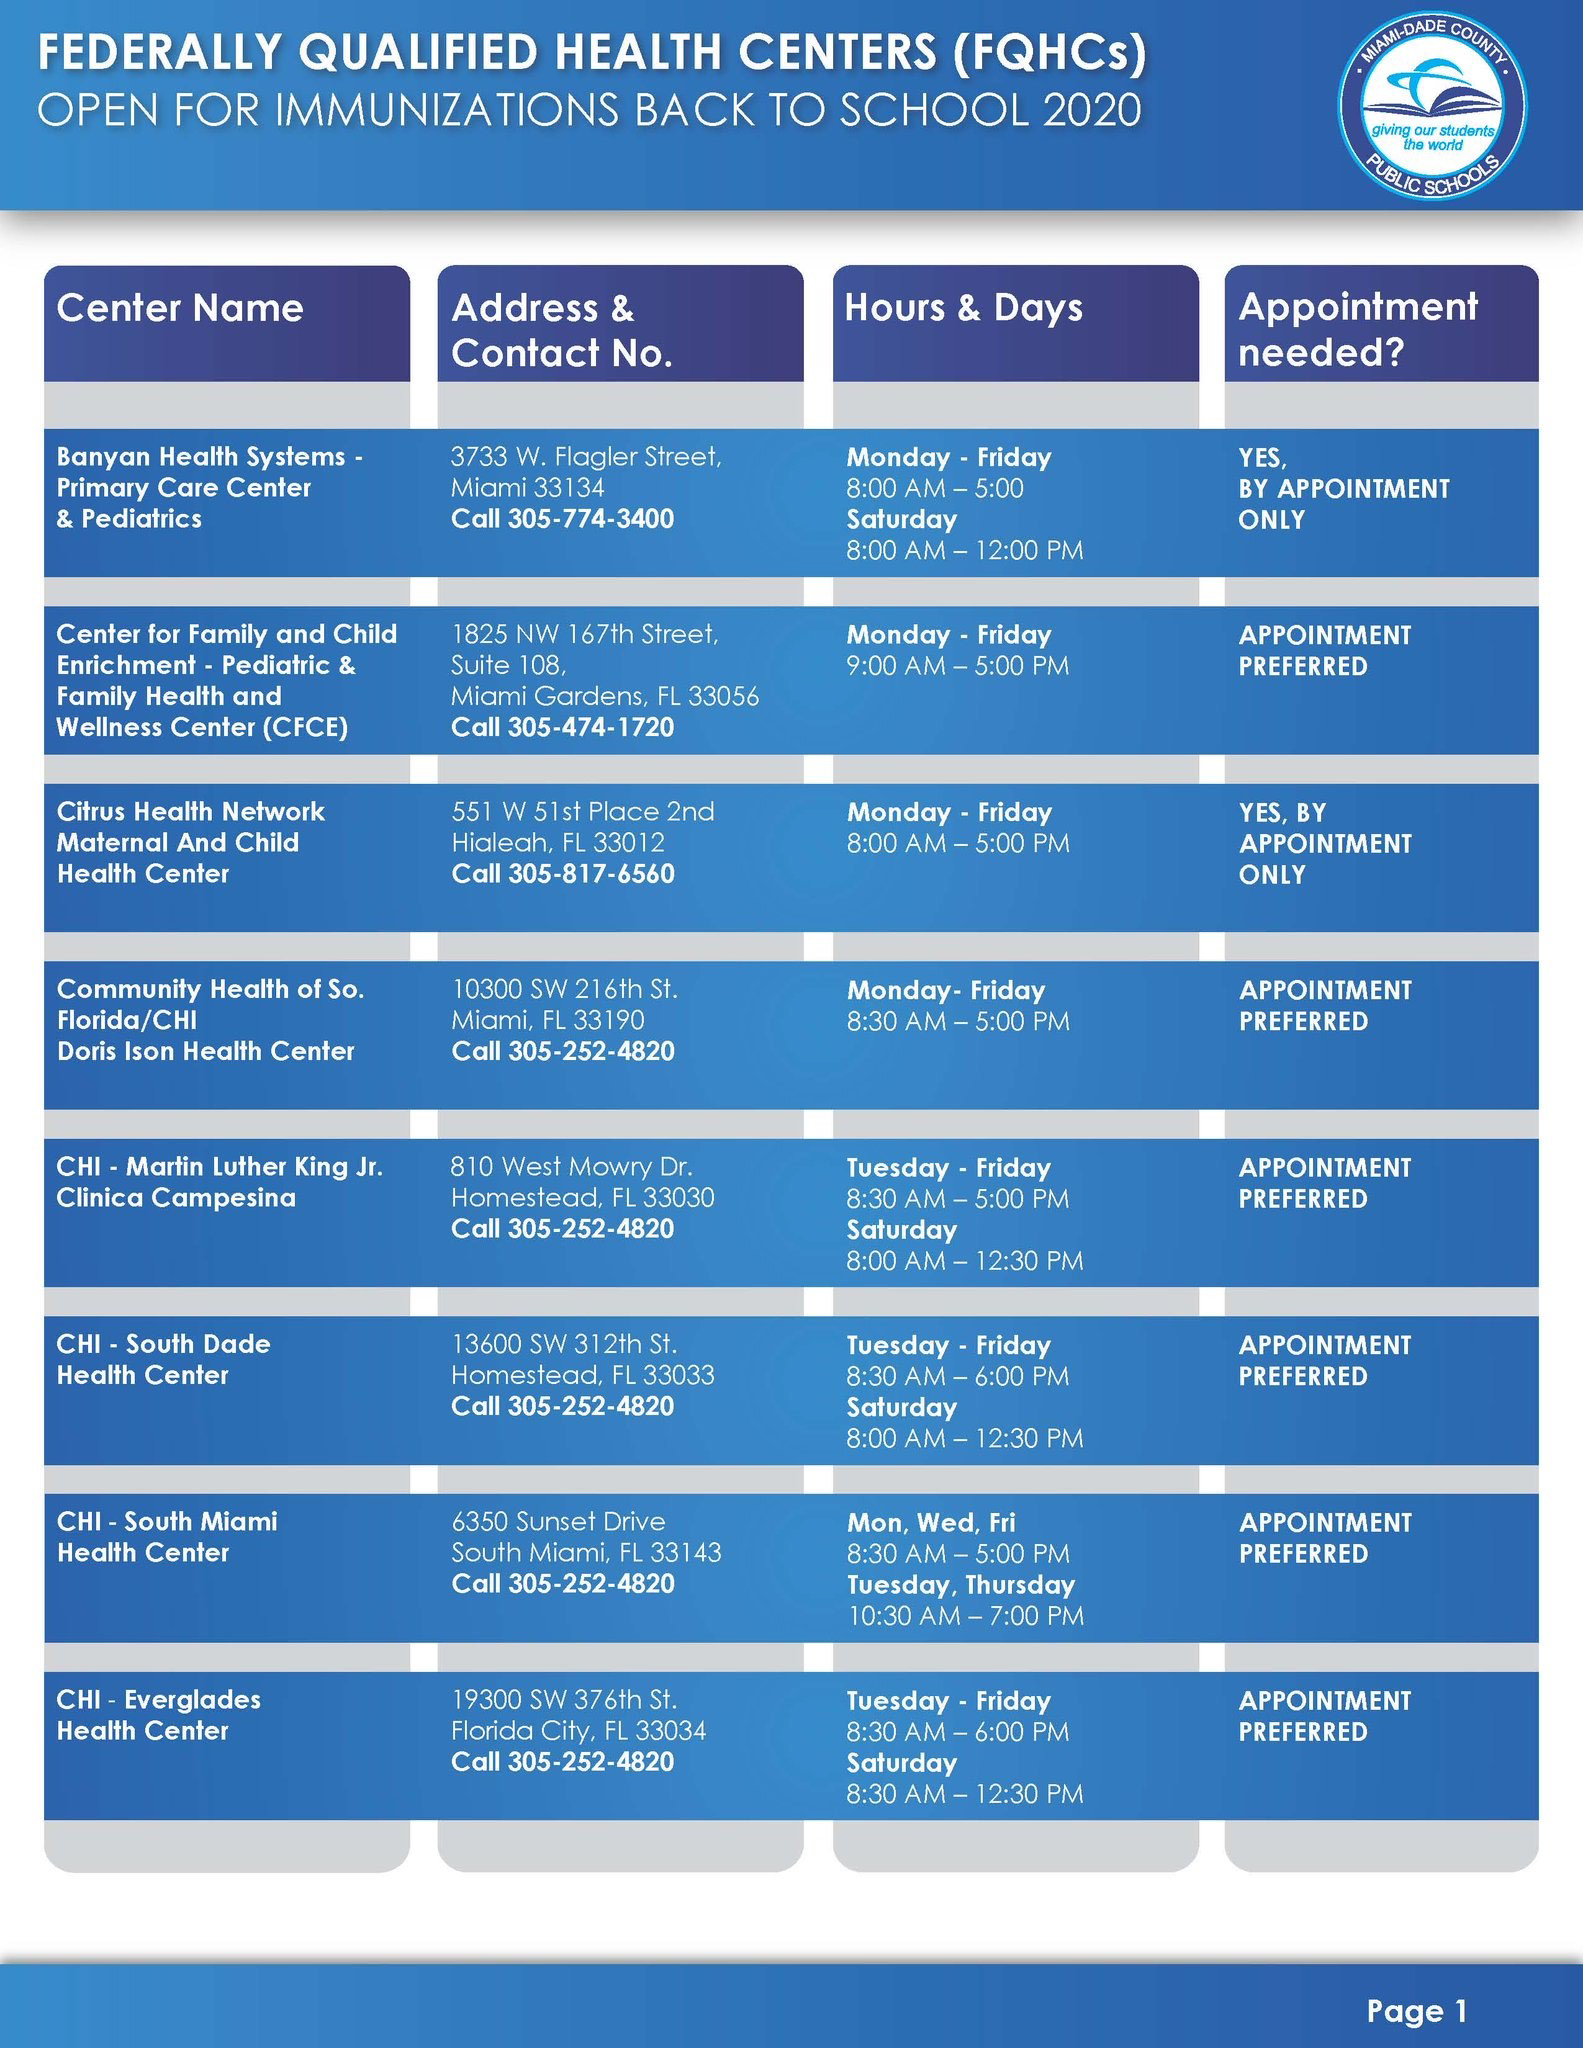 Federally Qualified Health Centers - Back to School 2021-2022